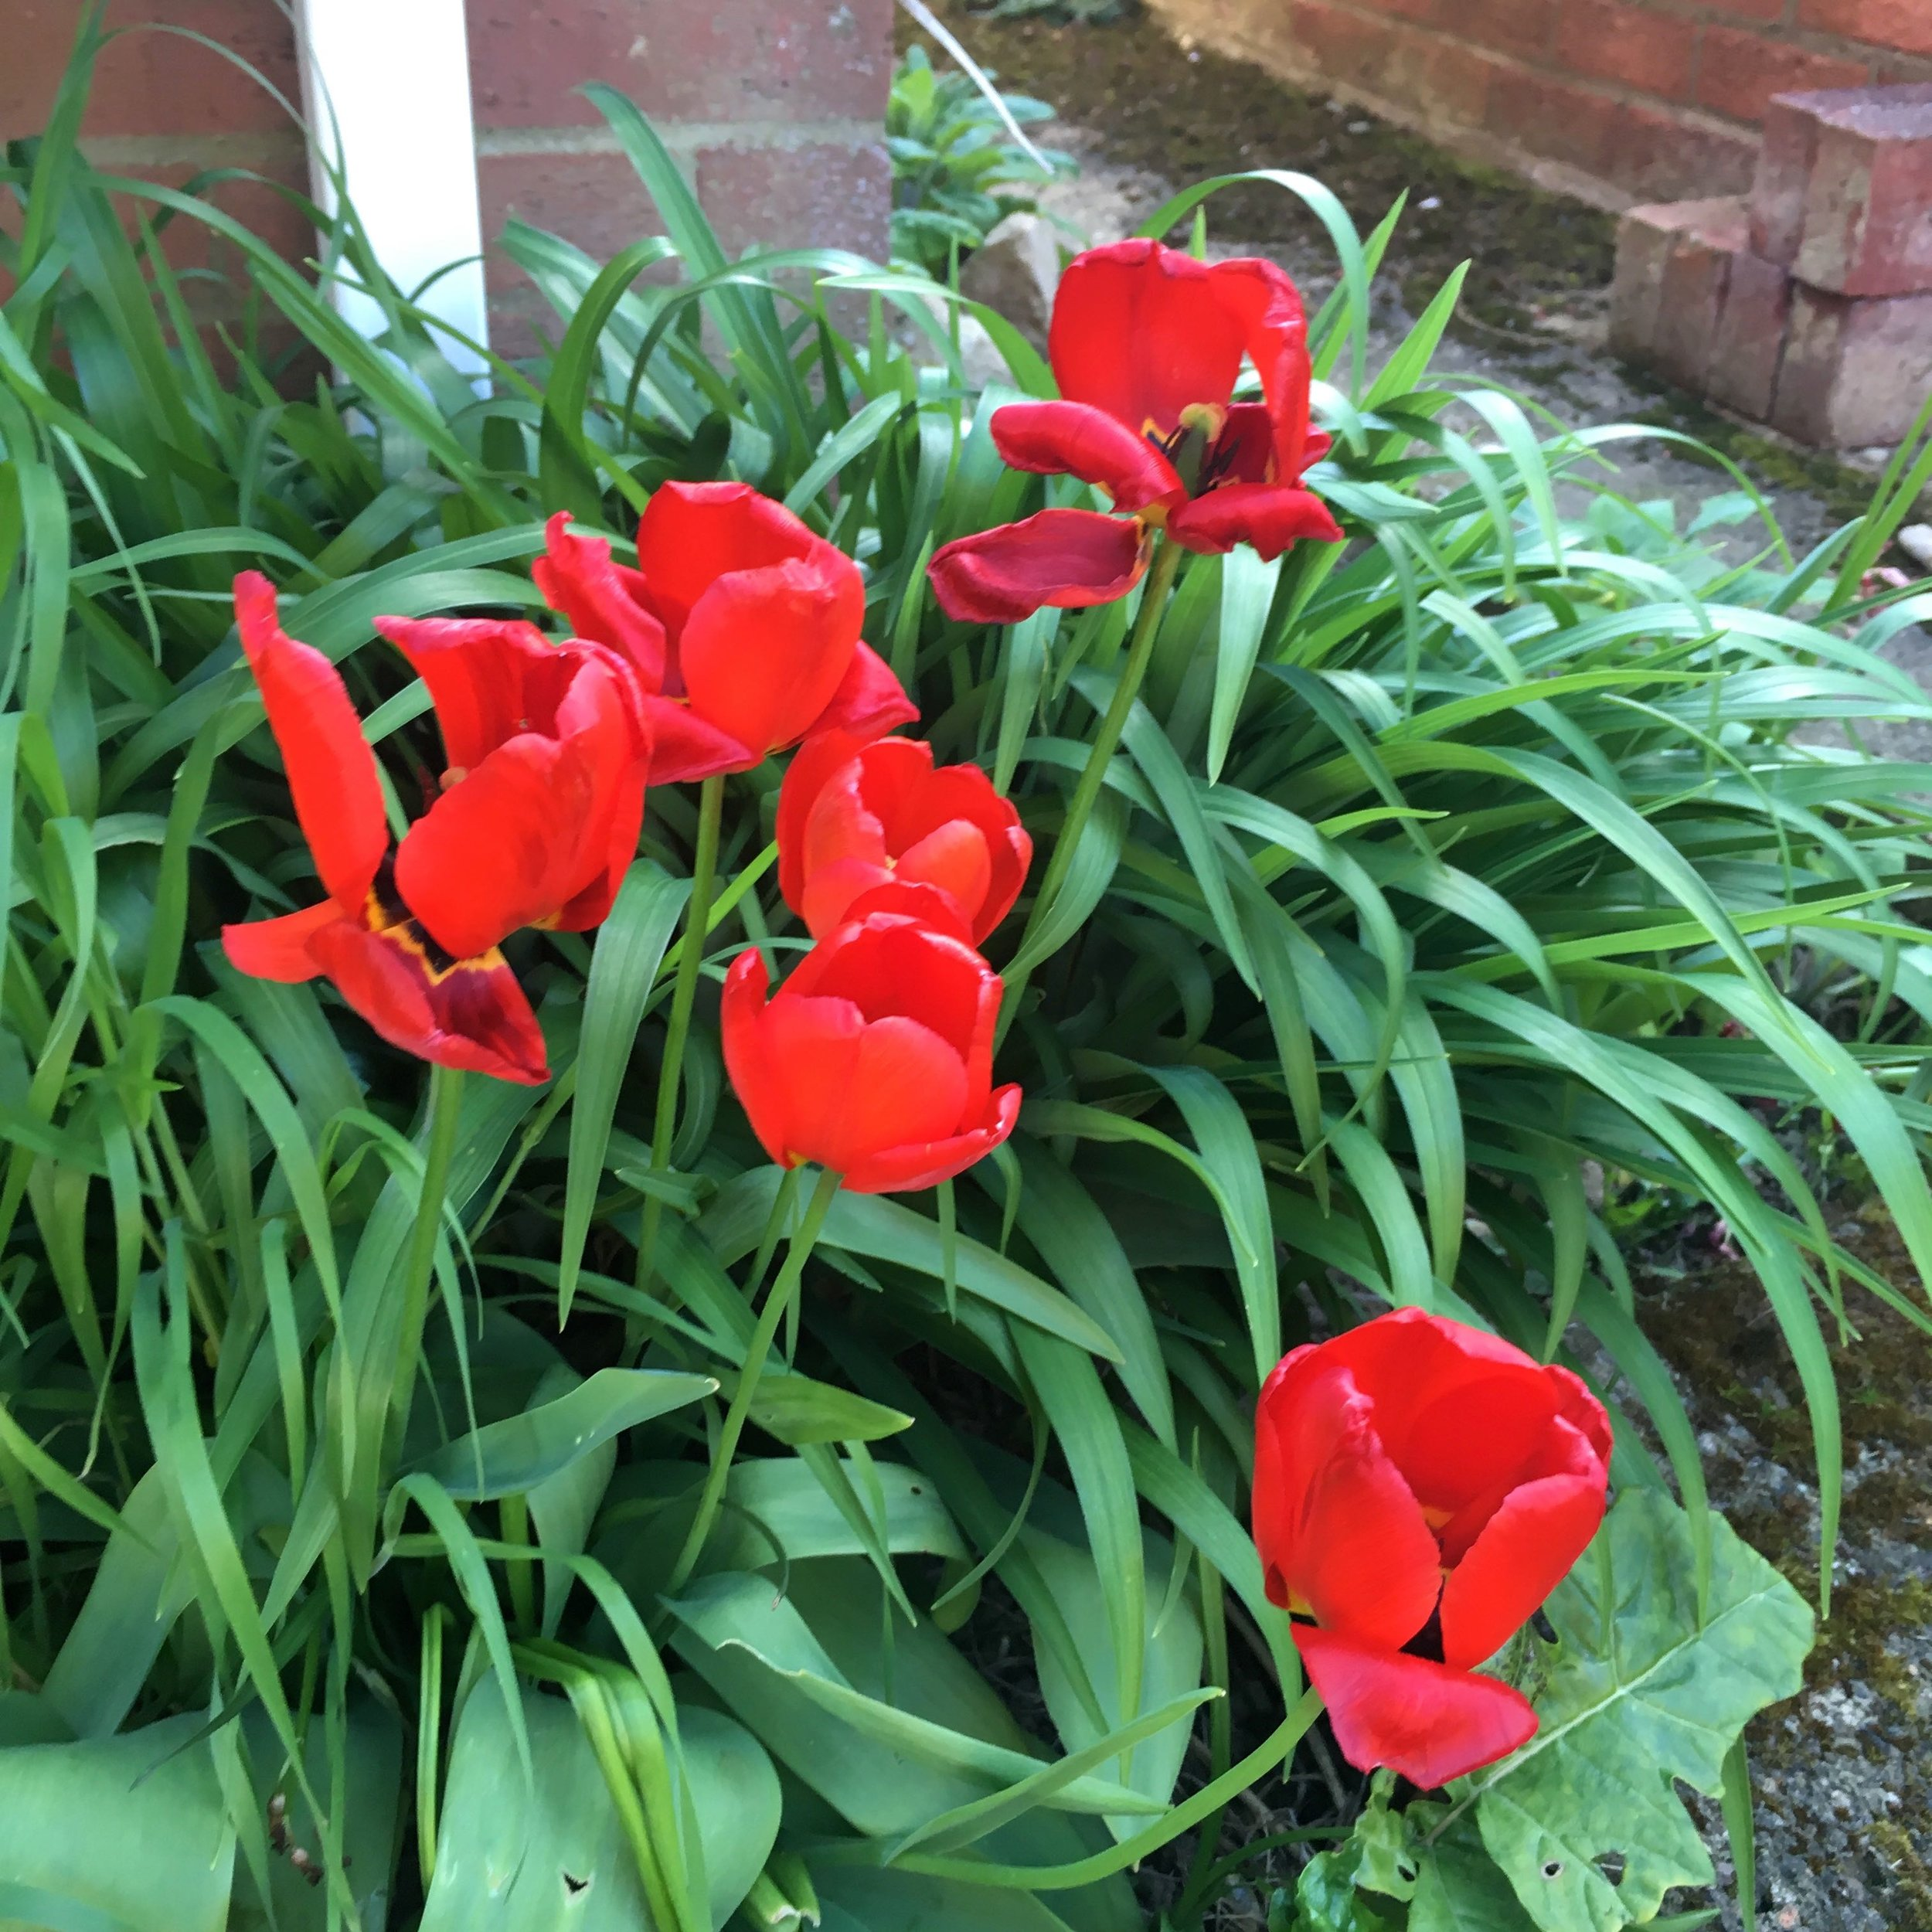 borrowing the foliage from other spring bulbs